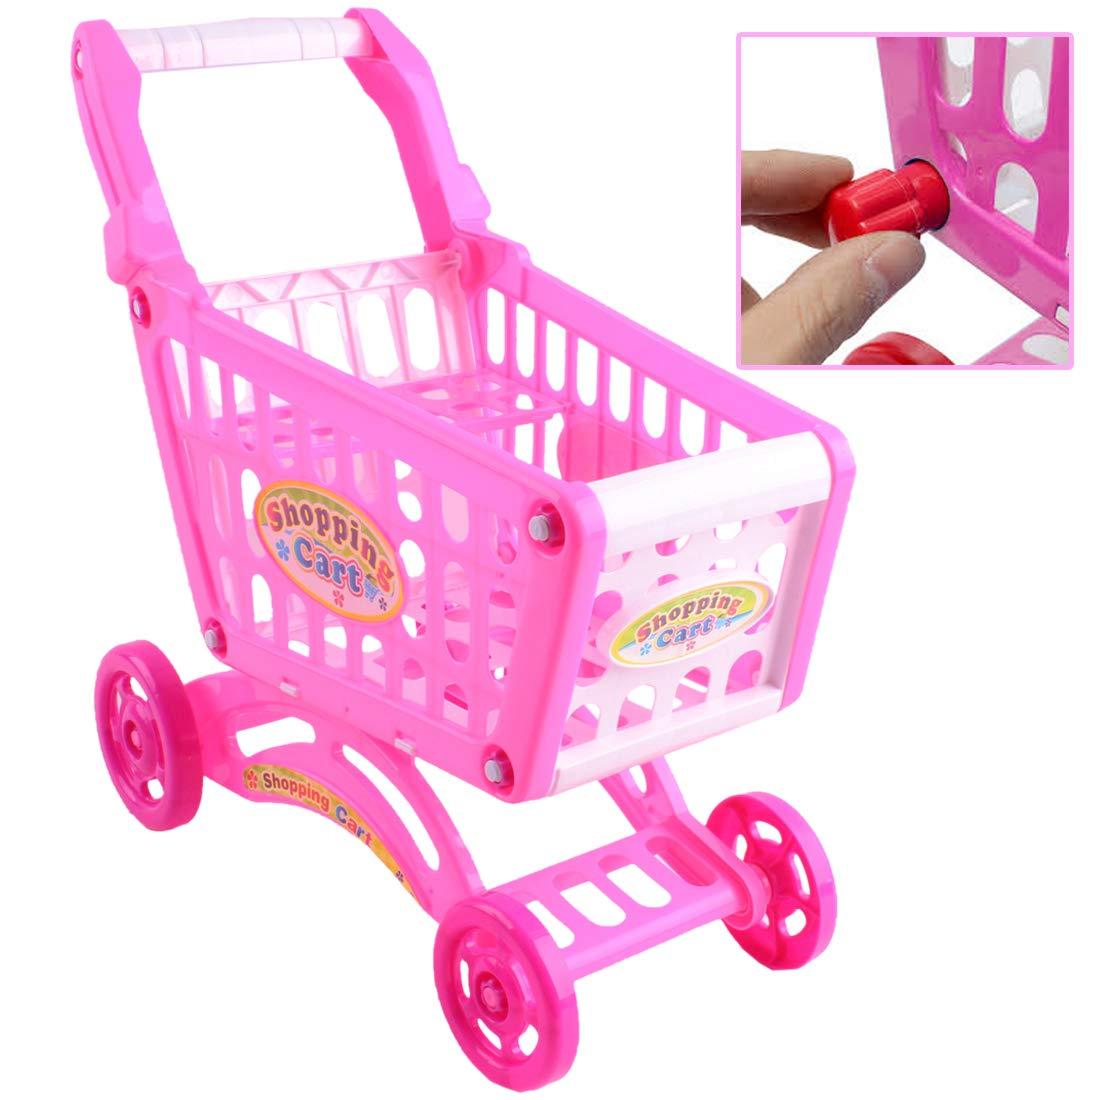 Amazon.com: (SPC-P) deAO PINK Childrens Shopping Trolley Over 80pcs Play Food Role Play New Model by deAO: Toys & Games